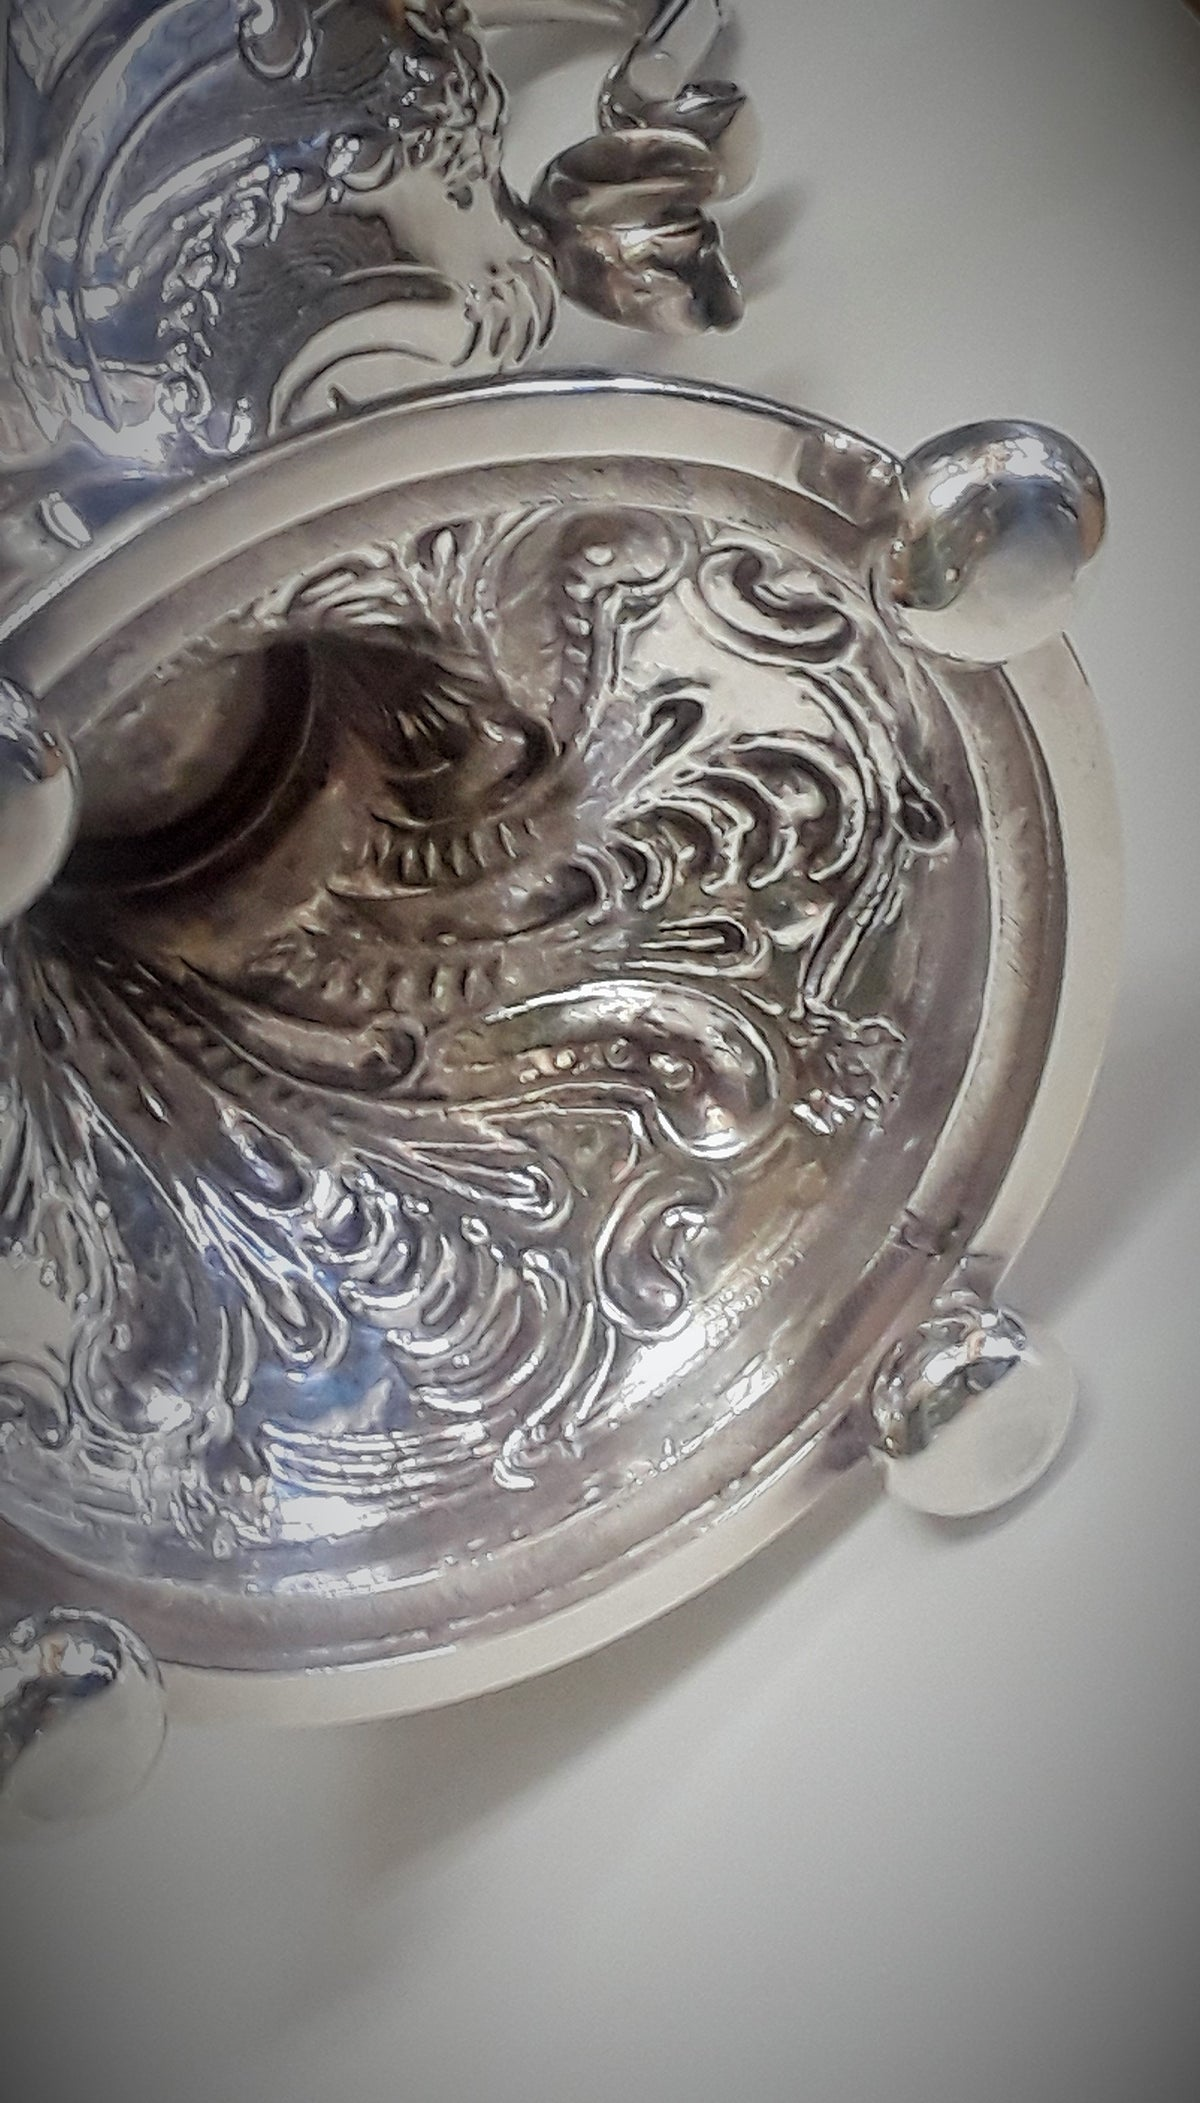 Georgian Sterling Silver Tea Urn English Late 18th/Early 19th Century